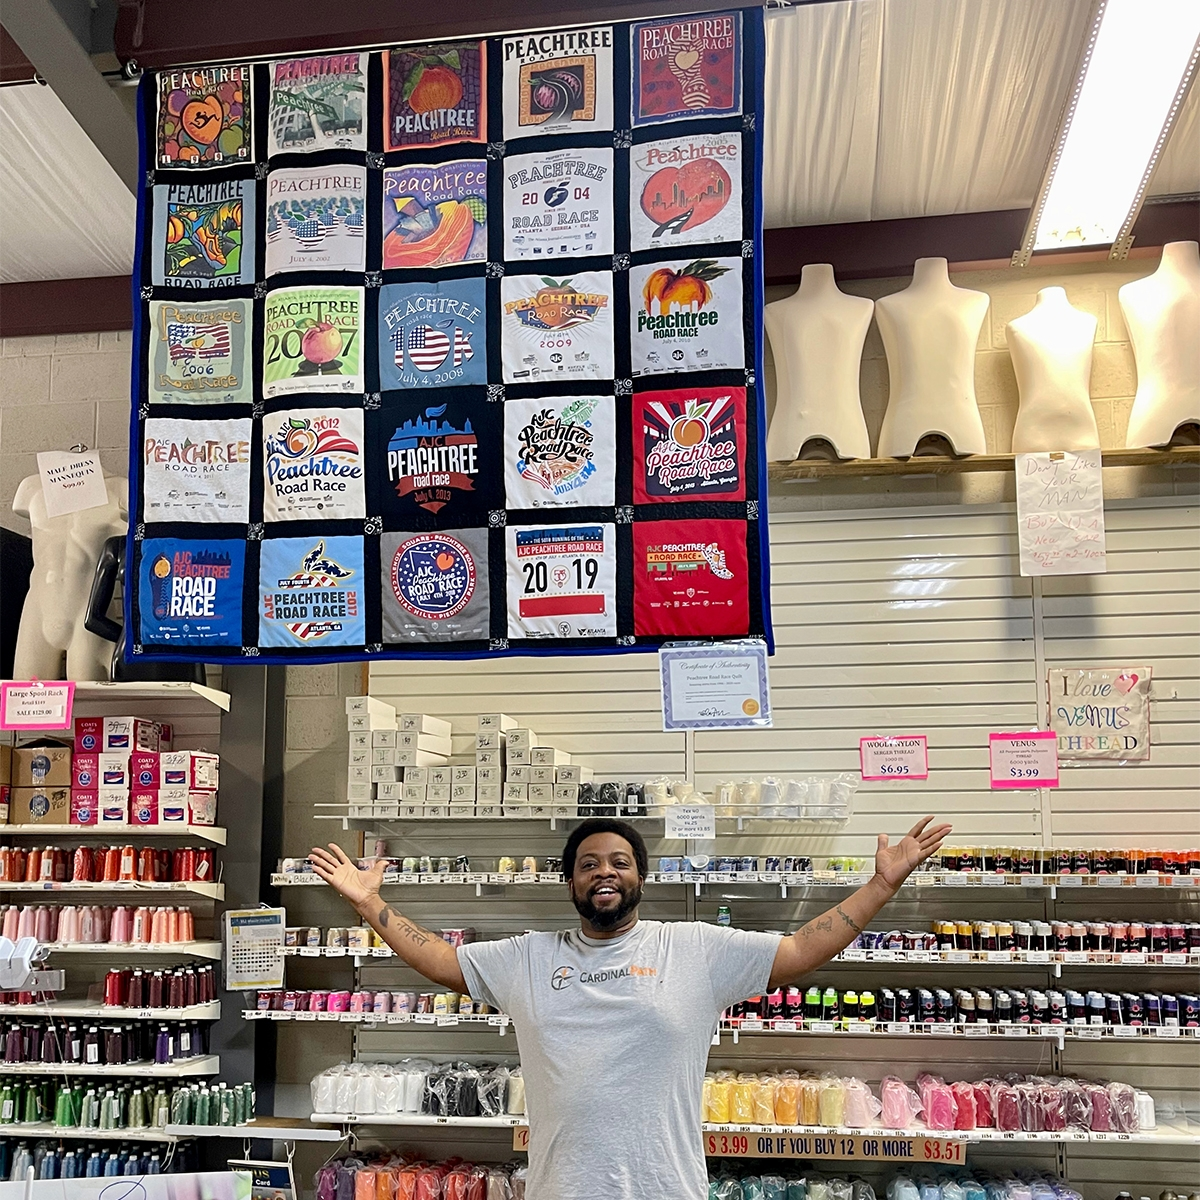 Peachtree Roadrace - Quilts by Big Wes